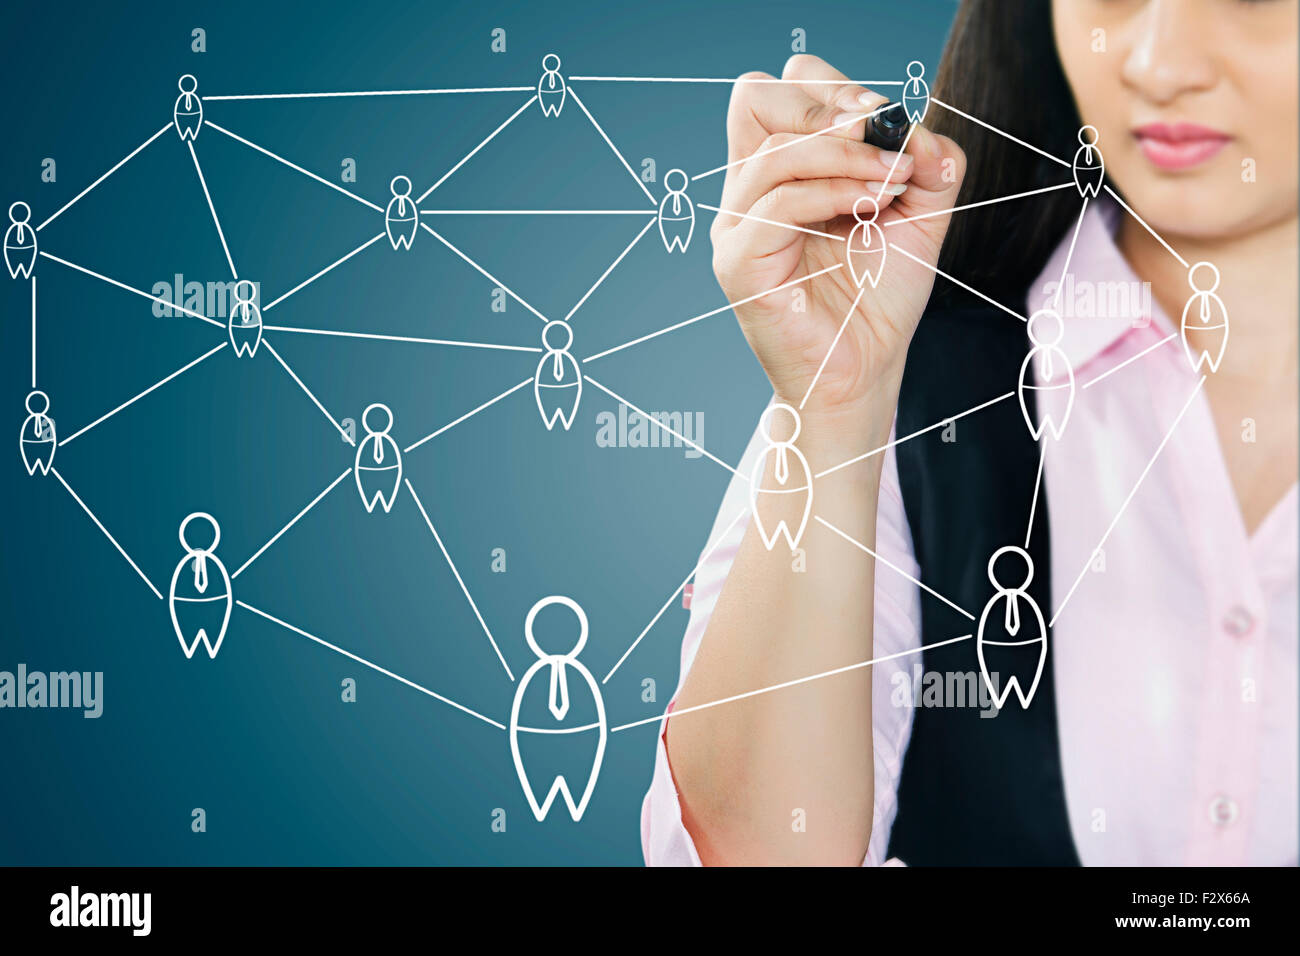 1 indian Business Woman Digitally Enhanced Networking - Stock Image